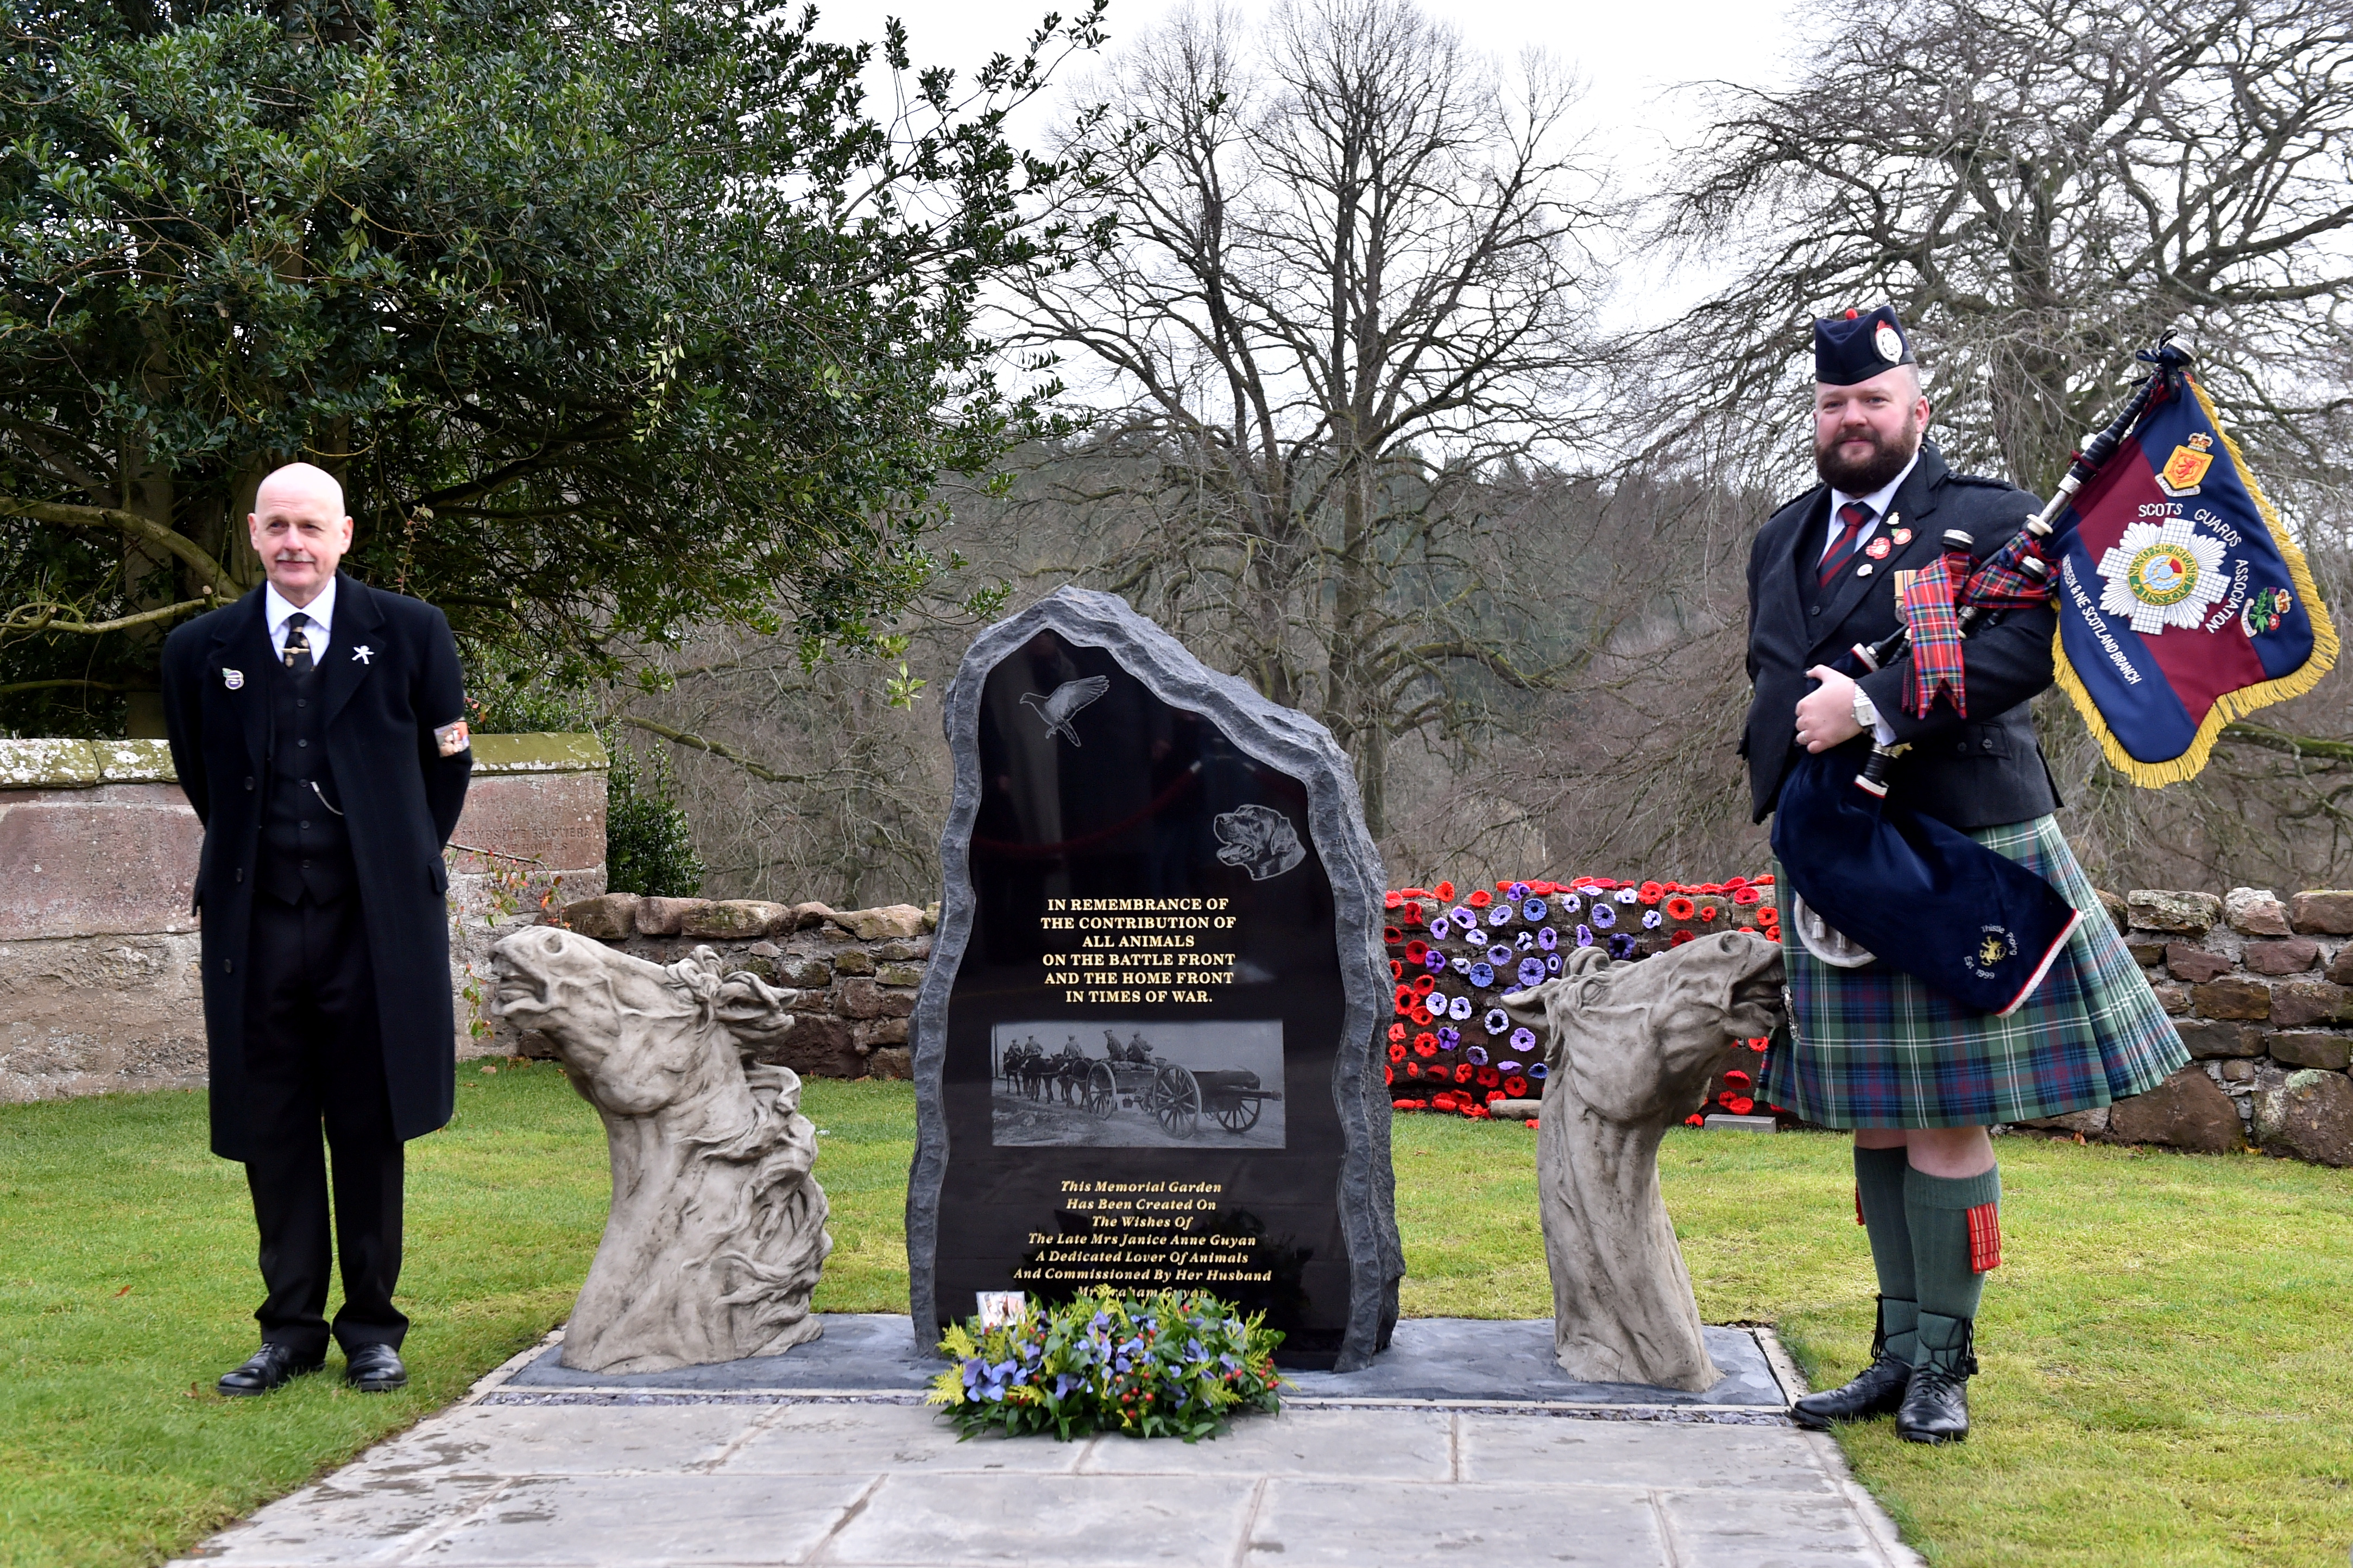 Delgatie Castle, Graham Guyan's late wife memorial, 17th November 2018.  Pictured is Graham Guyan (L) and a piper at todays ceremony.  Picture by Scott Baxter